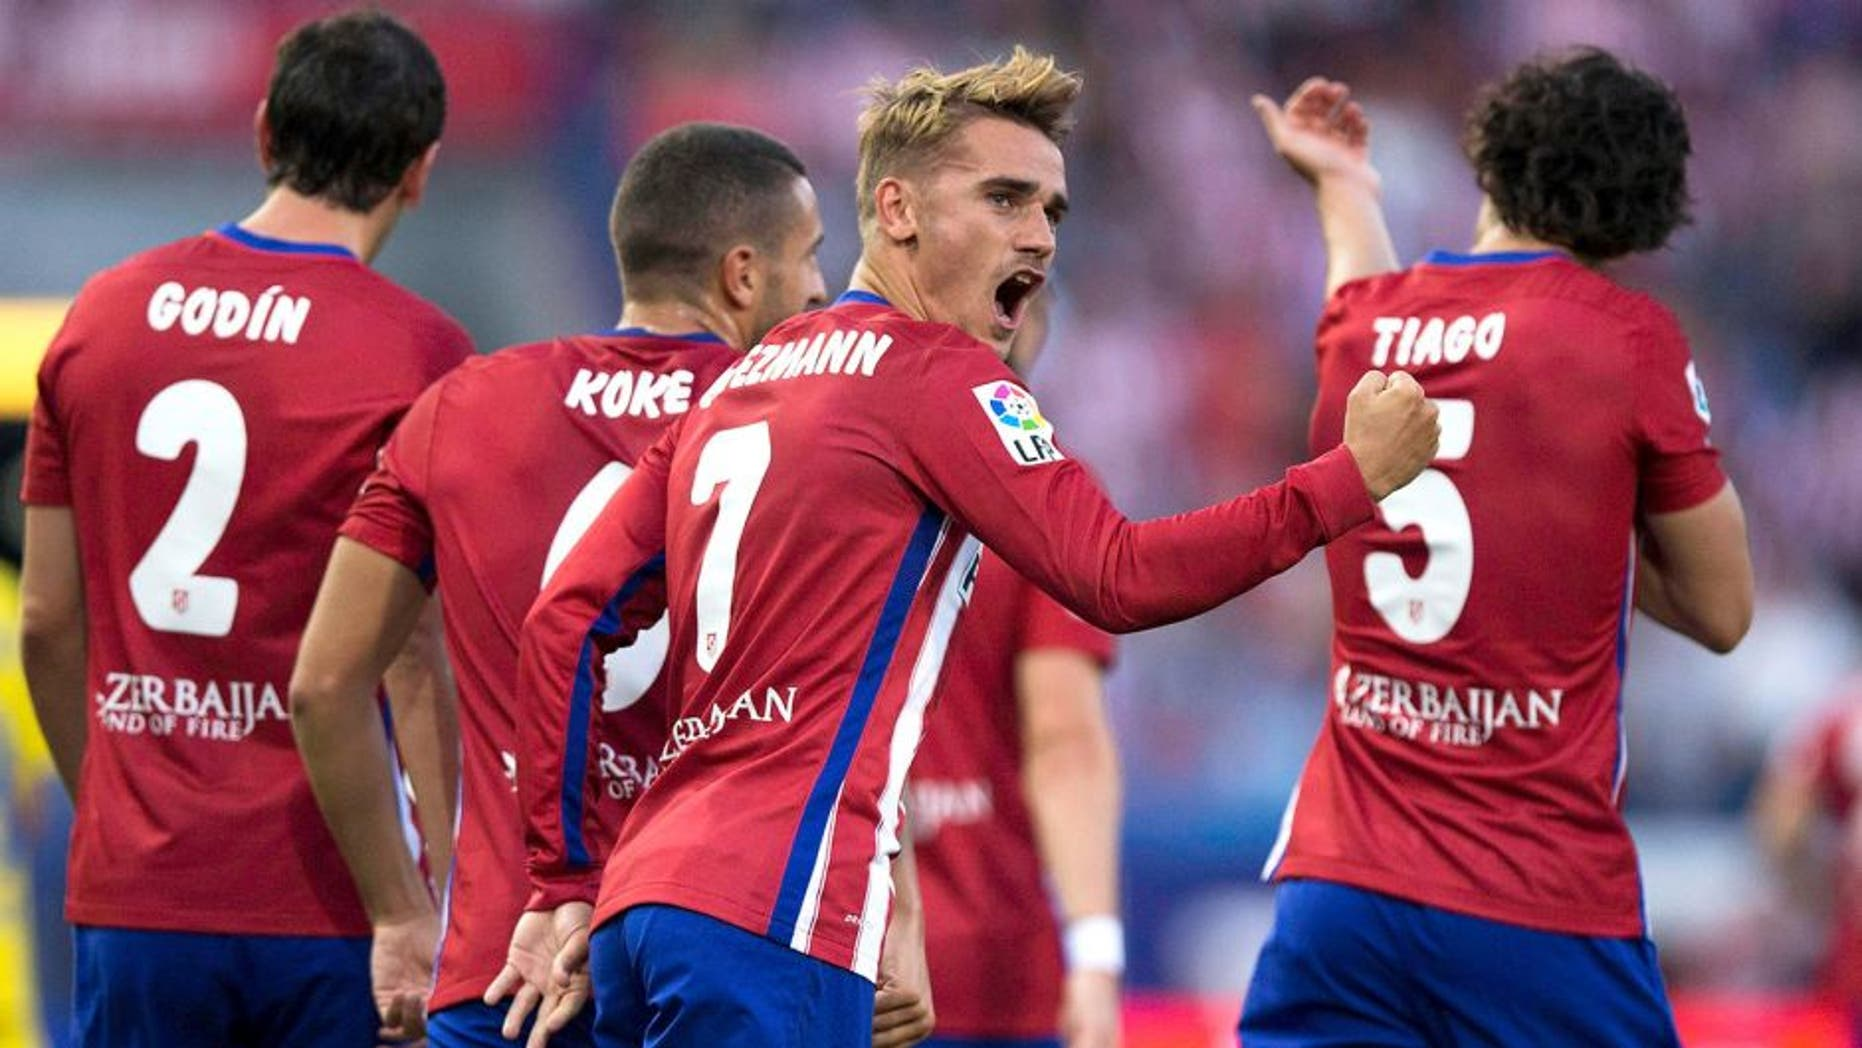 MADRID, SPAIN - AUGUST 22: Antoine Griezmann of Atletico de Madrid celebrates scoring their opening goal during the La Liga match between Club Atletico de Madrid and UD Las Palmas at Vicente Calderon Stadium on August 22, 2015 in Madrid, Spain. (Photo by Gonzalo Arroyo Moreno/Getty Images)